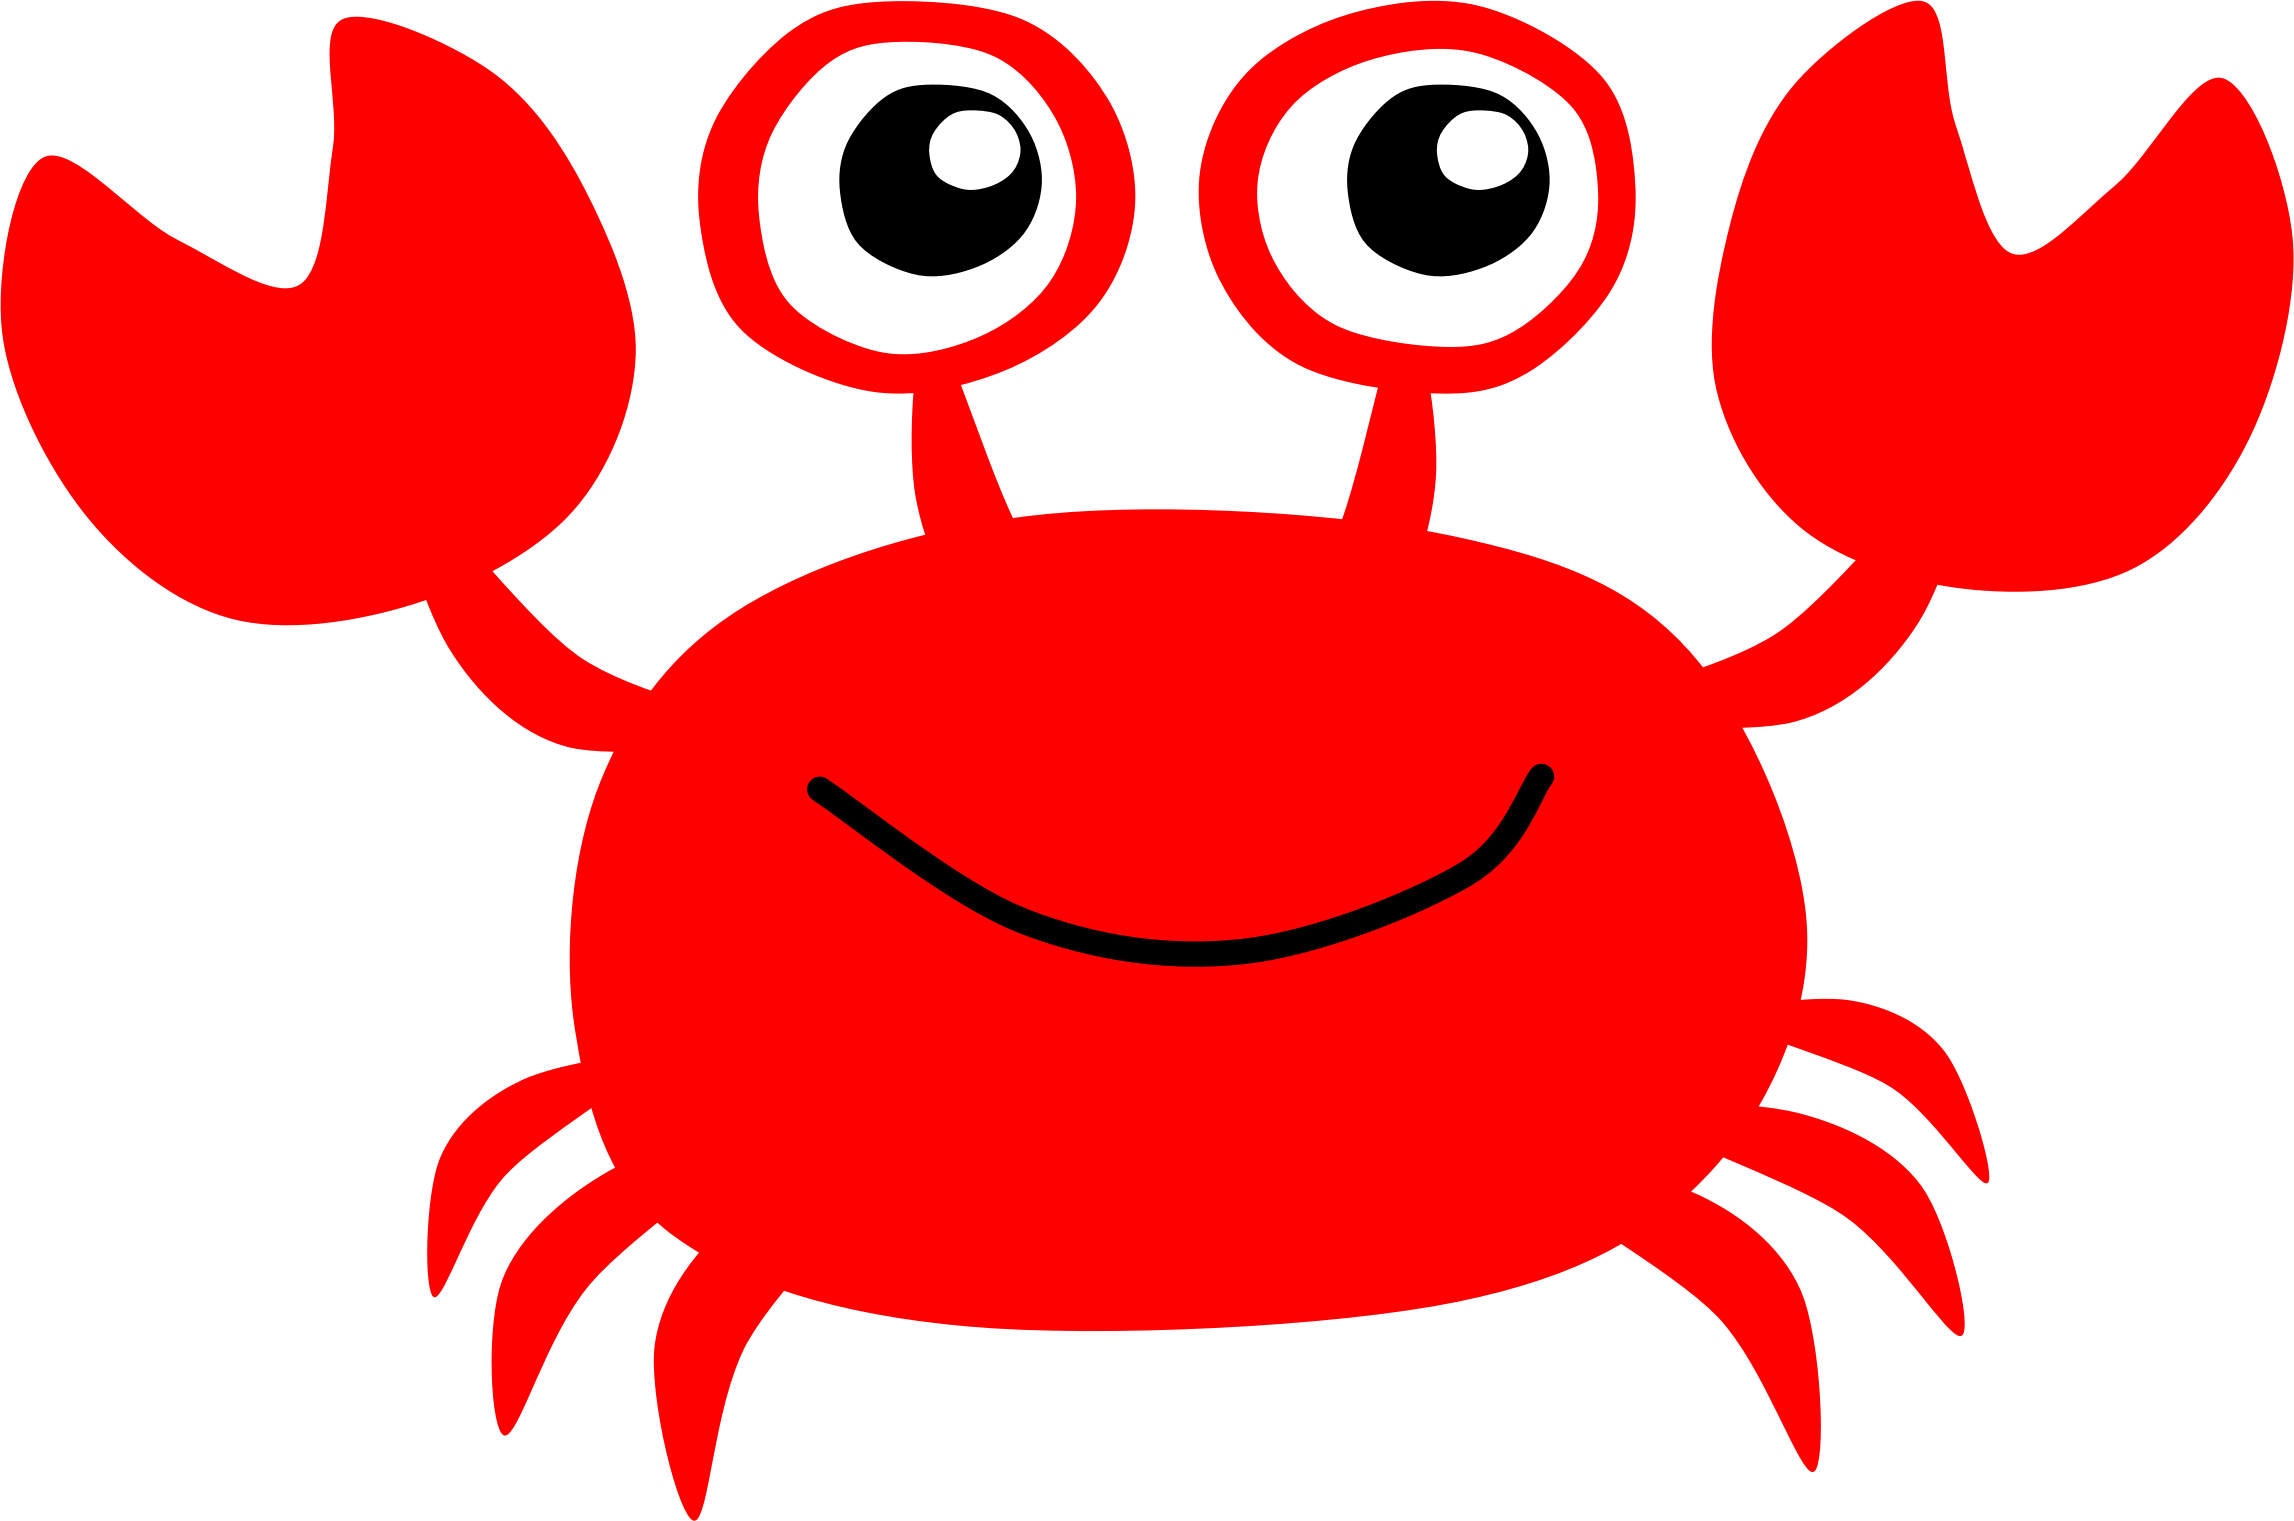 Red icons png free. Crab clipart crab food